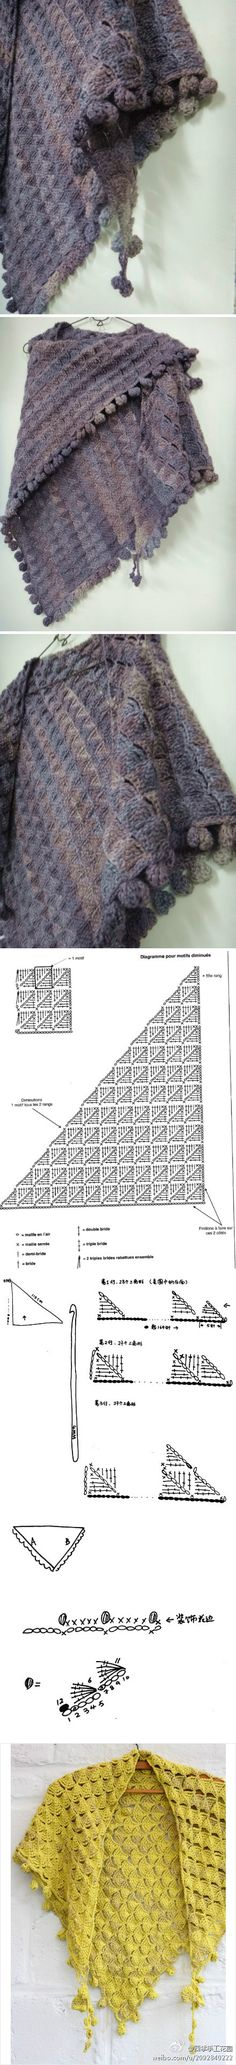 Charted crochet shawl - looks warn and cosy!